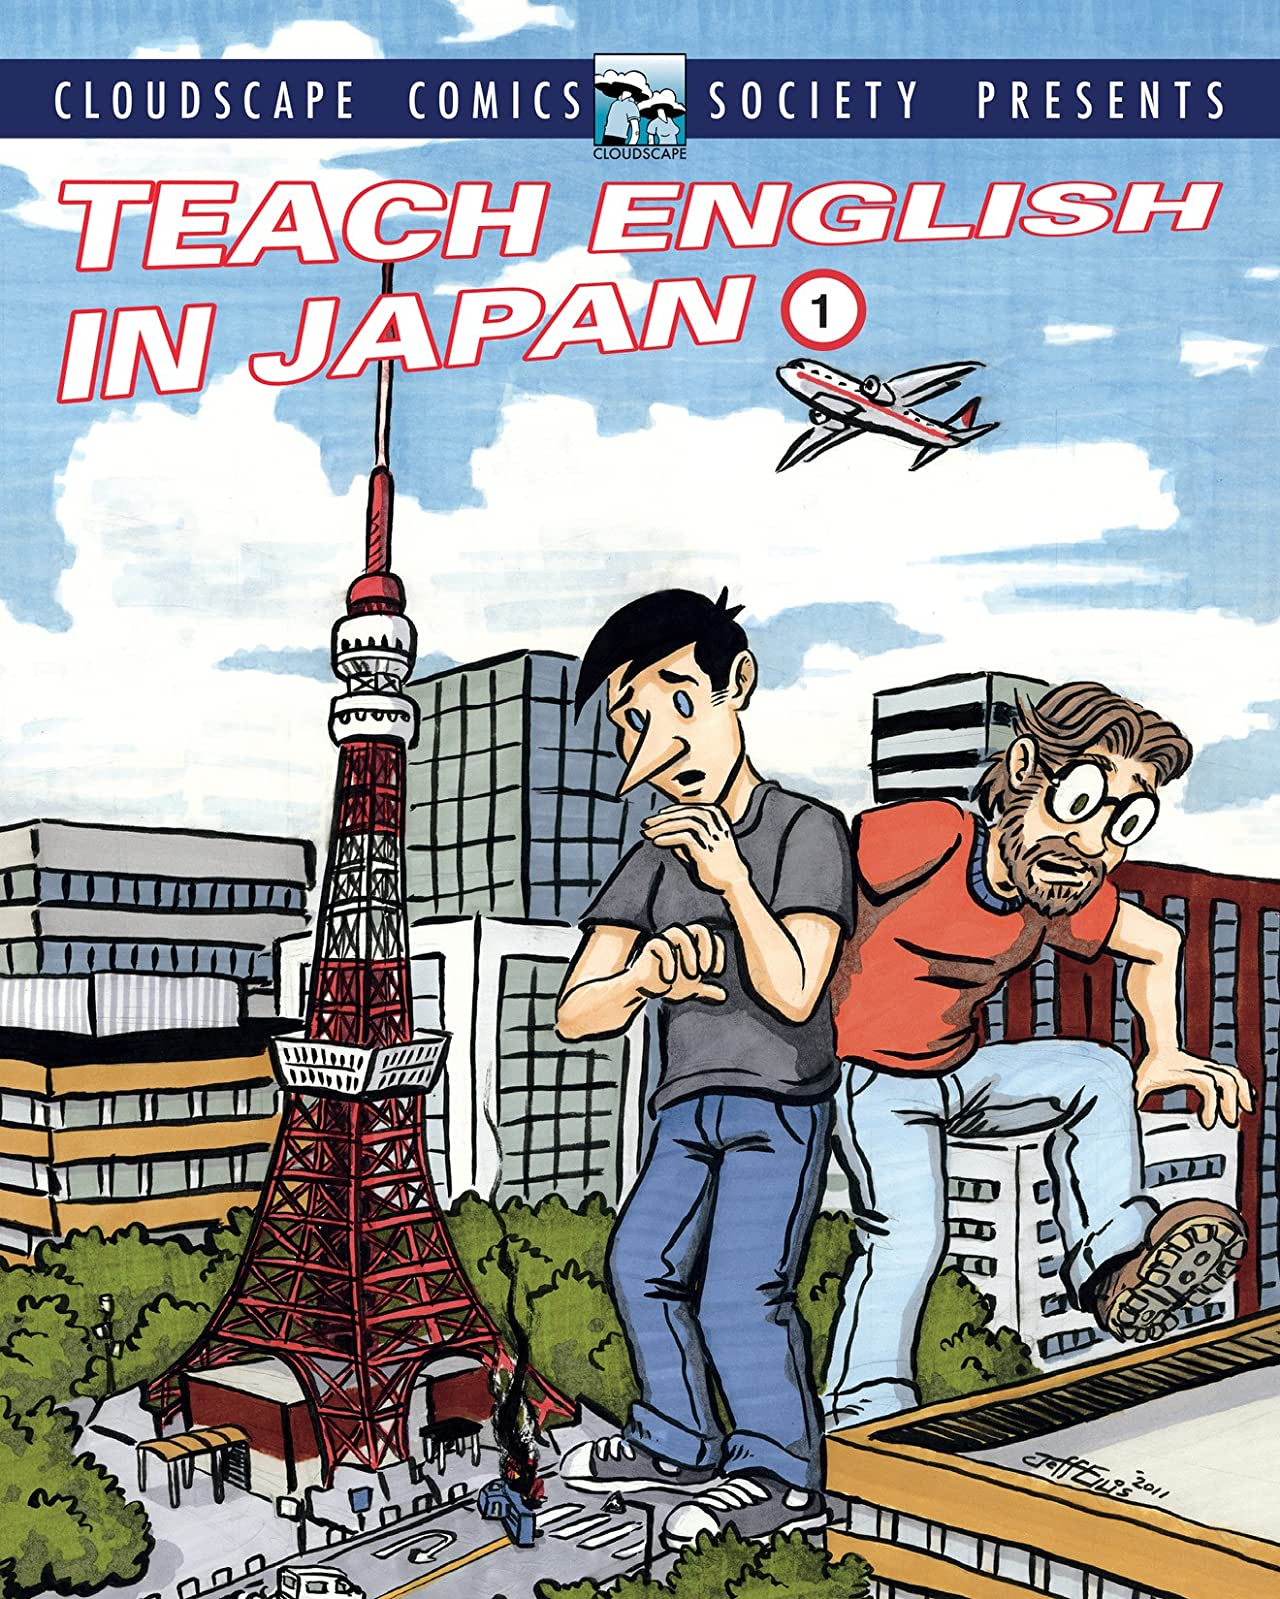 Teach English in Japan #1